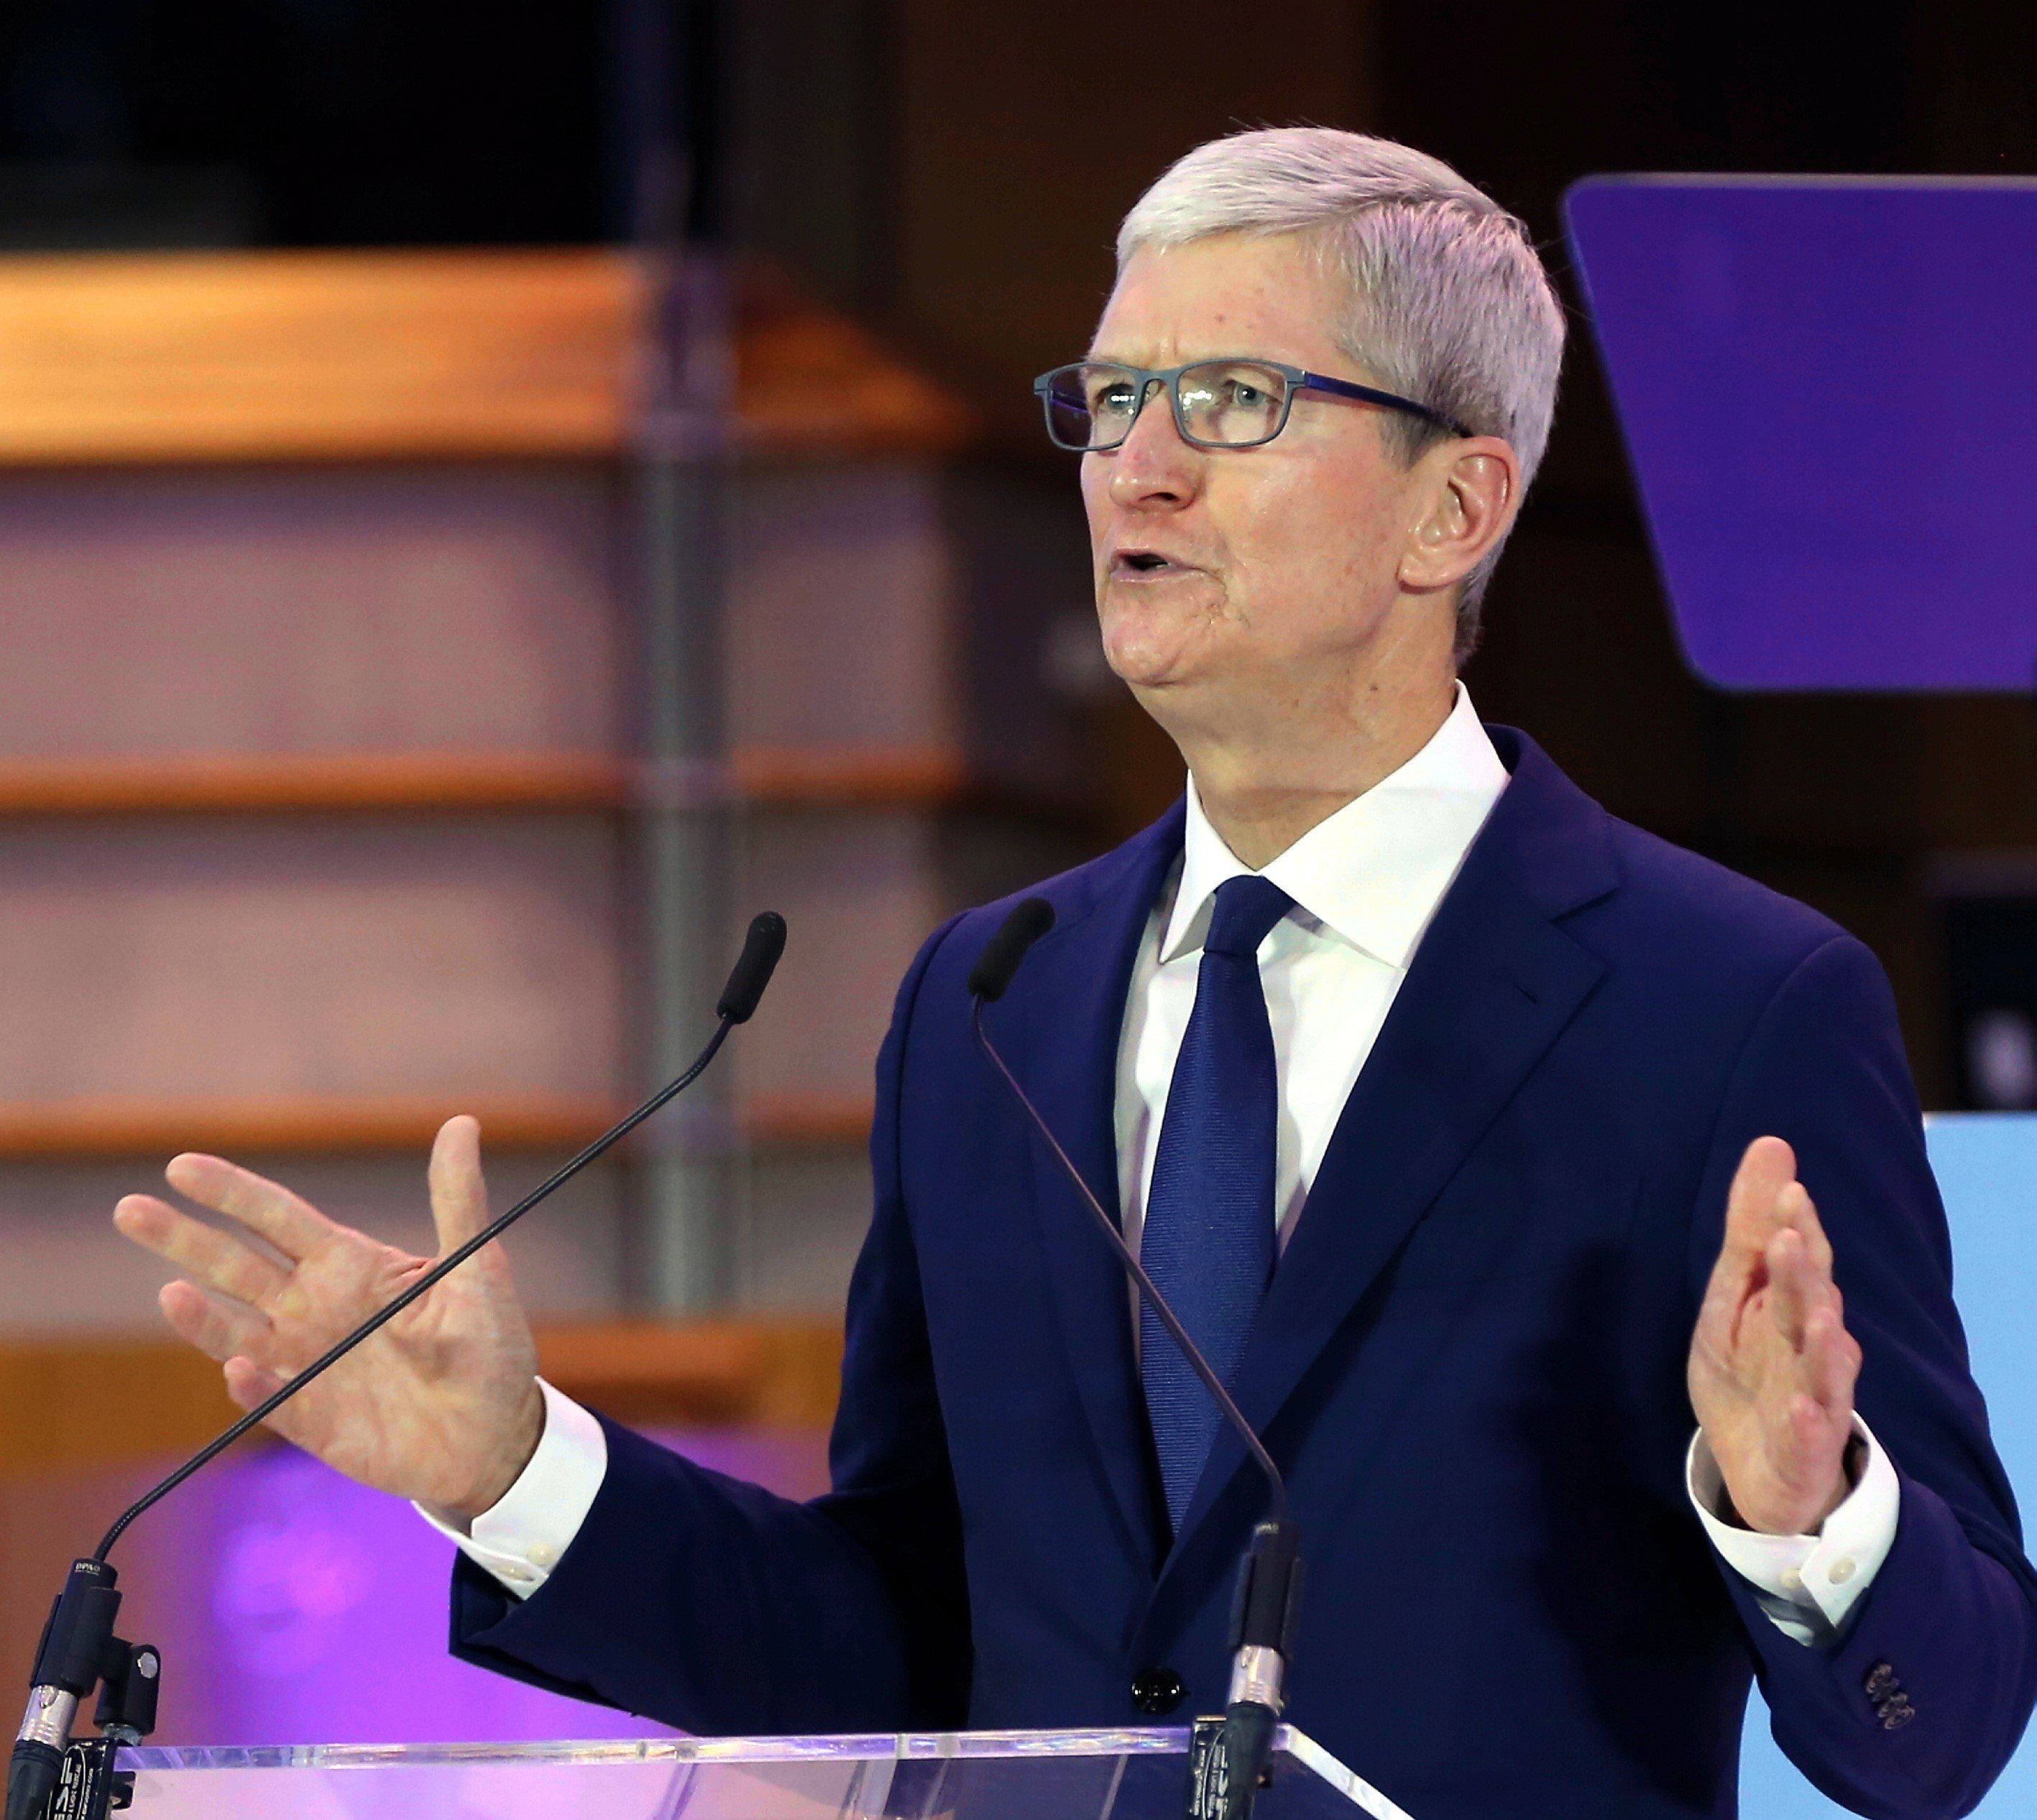 Tim Cook, chief executive of Apple, addressing the International Conference of Data Protection and Privacy Commissioners in Brussels.